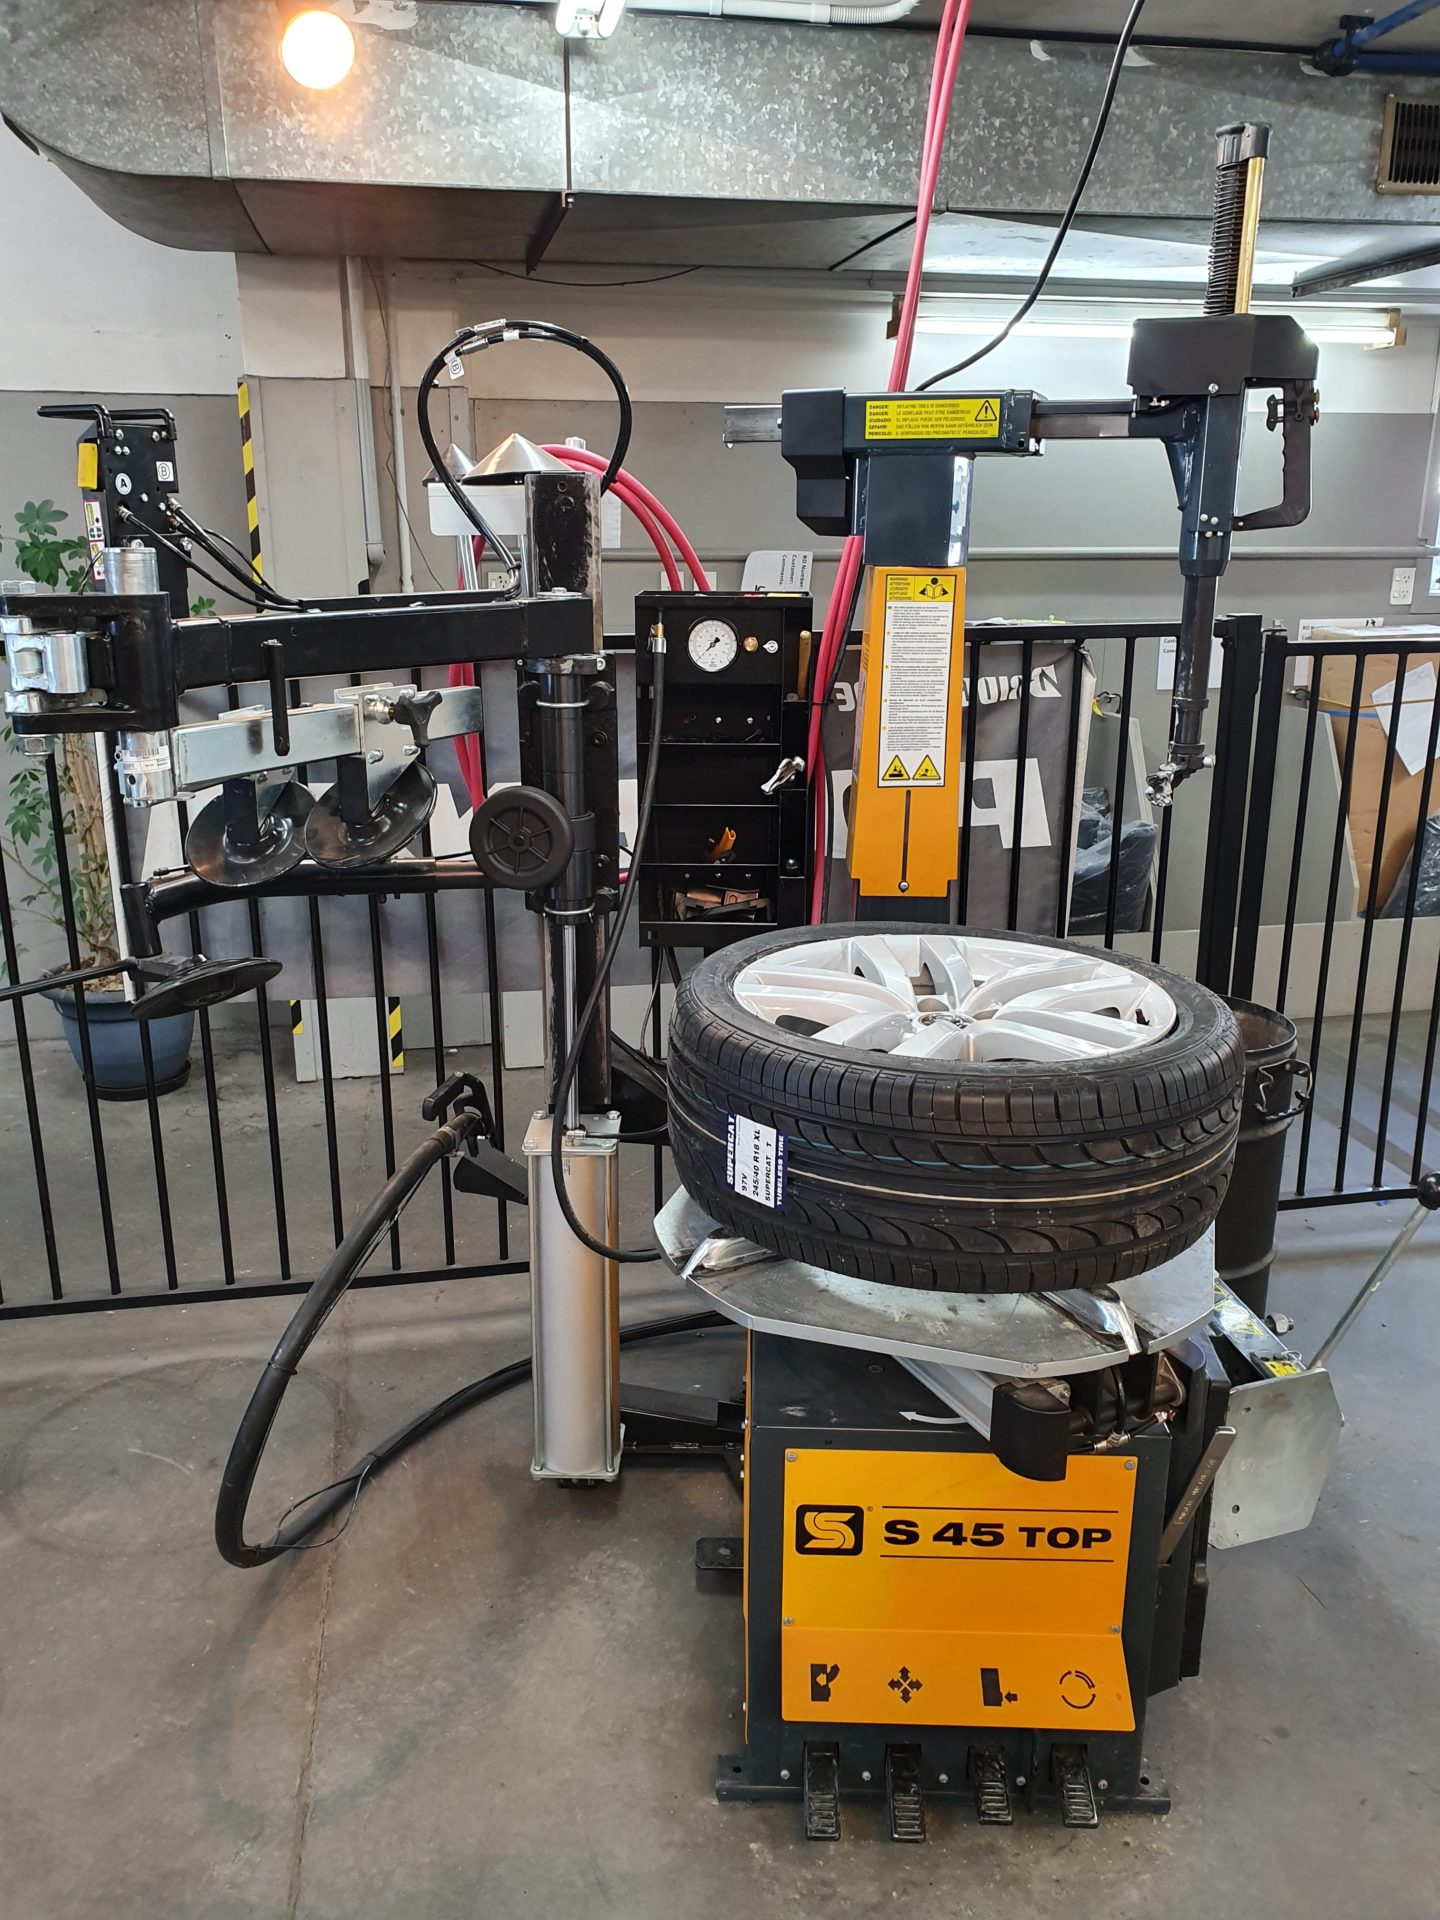 Car tire changer by Sice automotive equipment